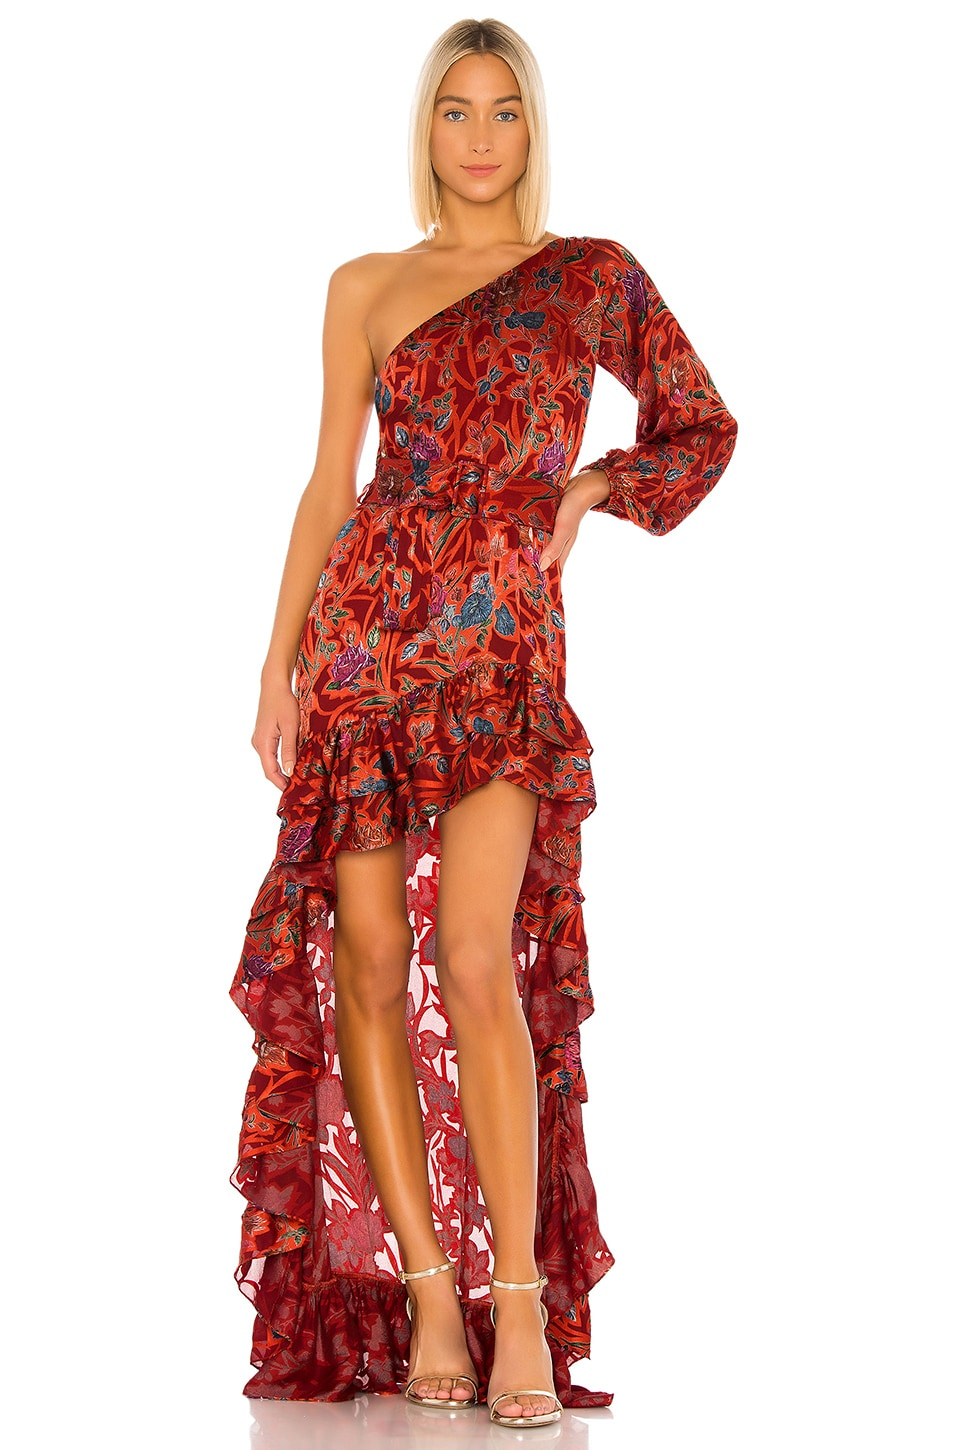 Alexis Marseille Dress in Red Floral